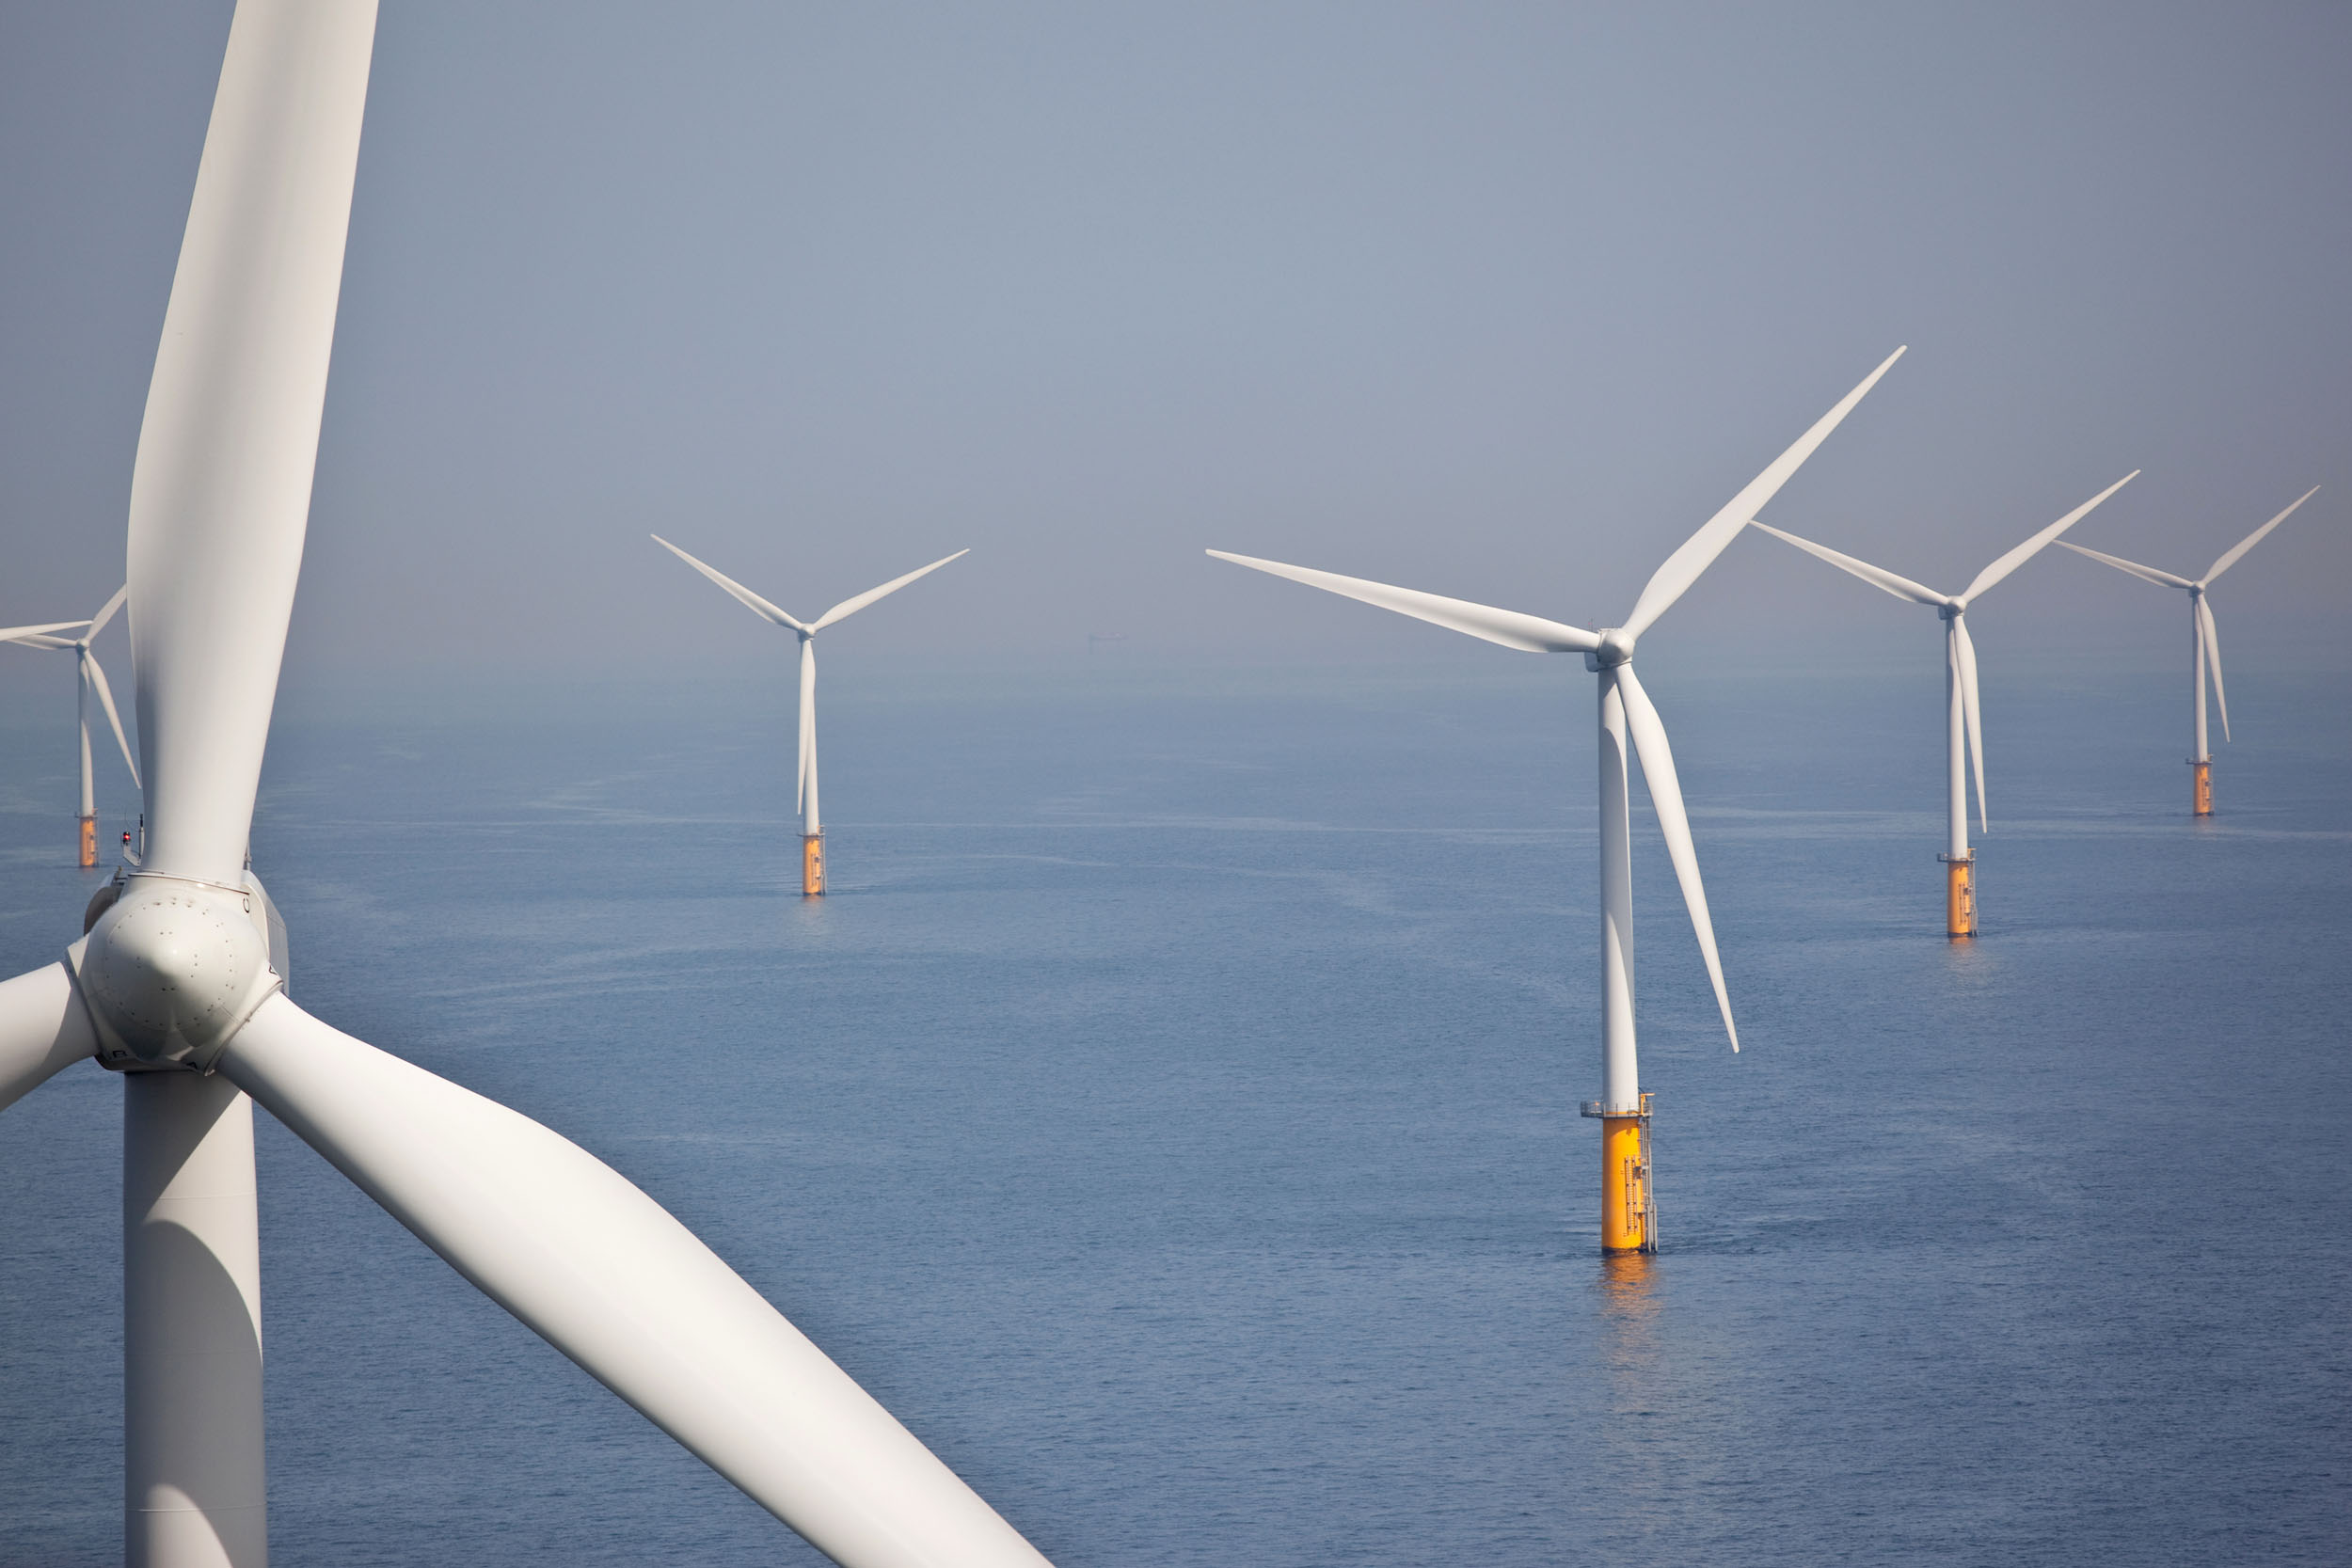 Offshore wind farms pose a risk to birds of prey